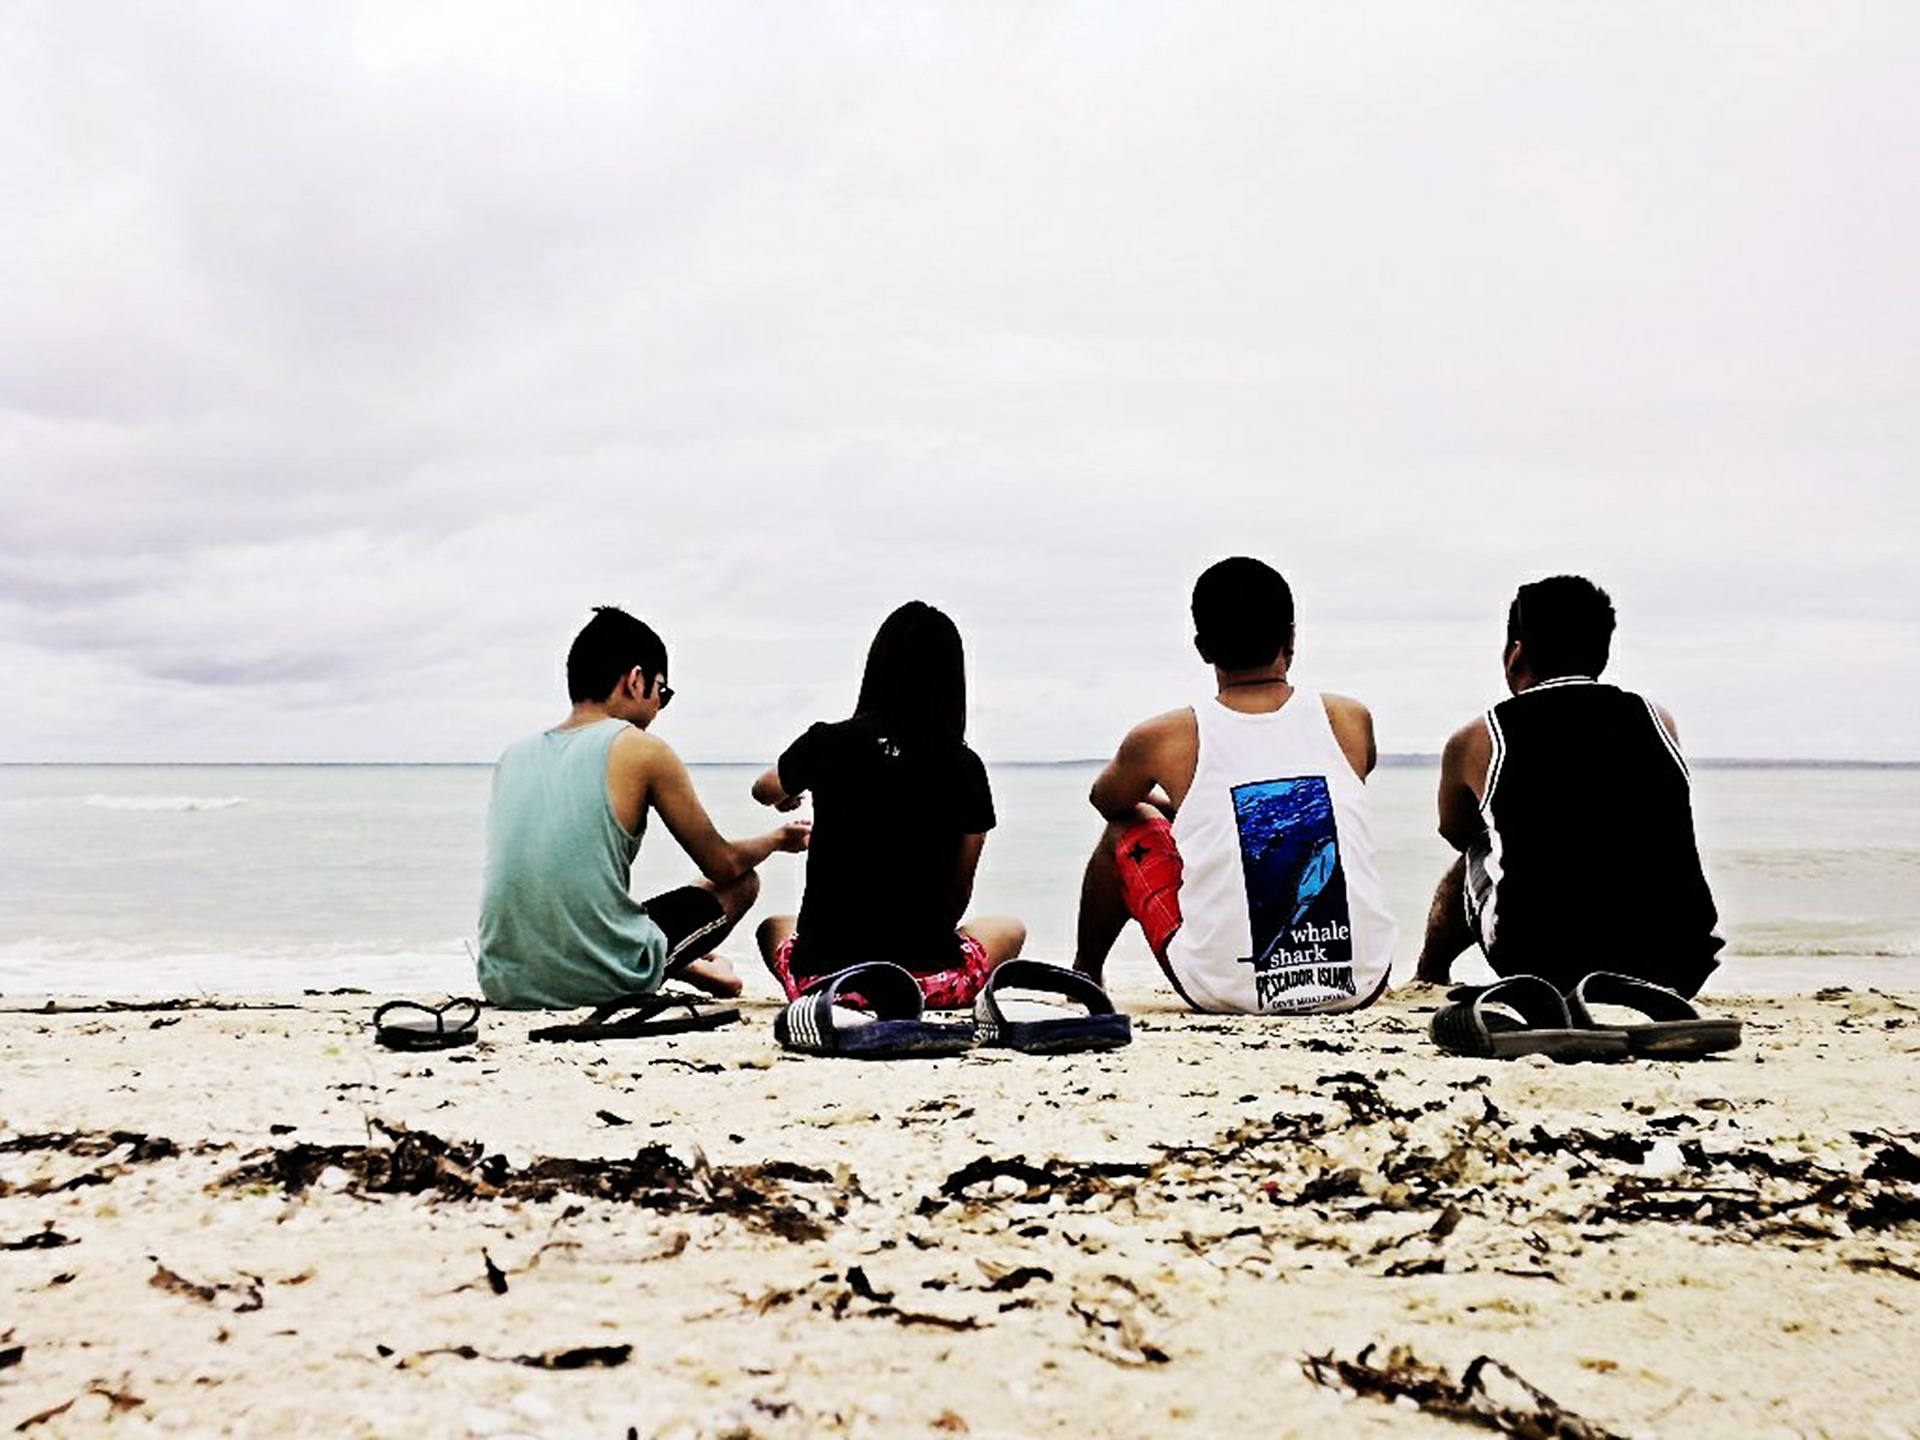 beach-group-friends-backpackers